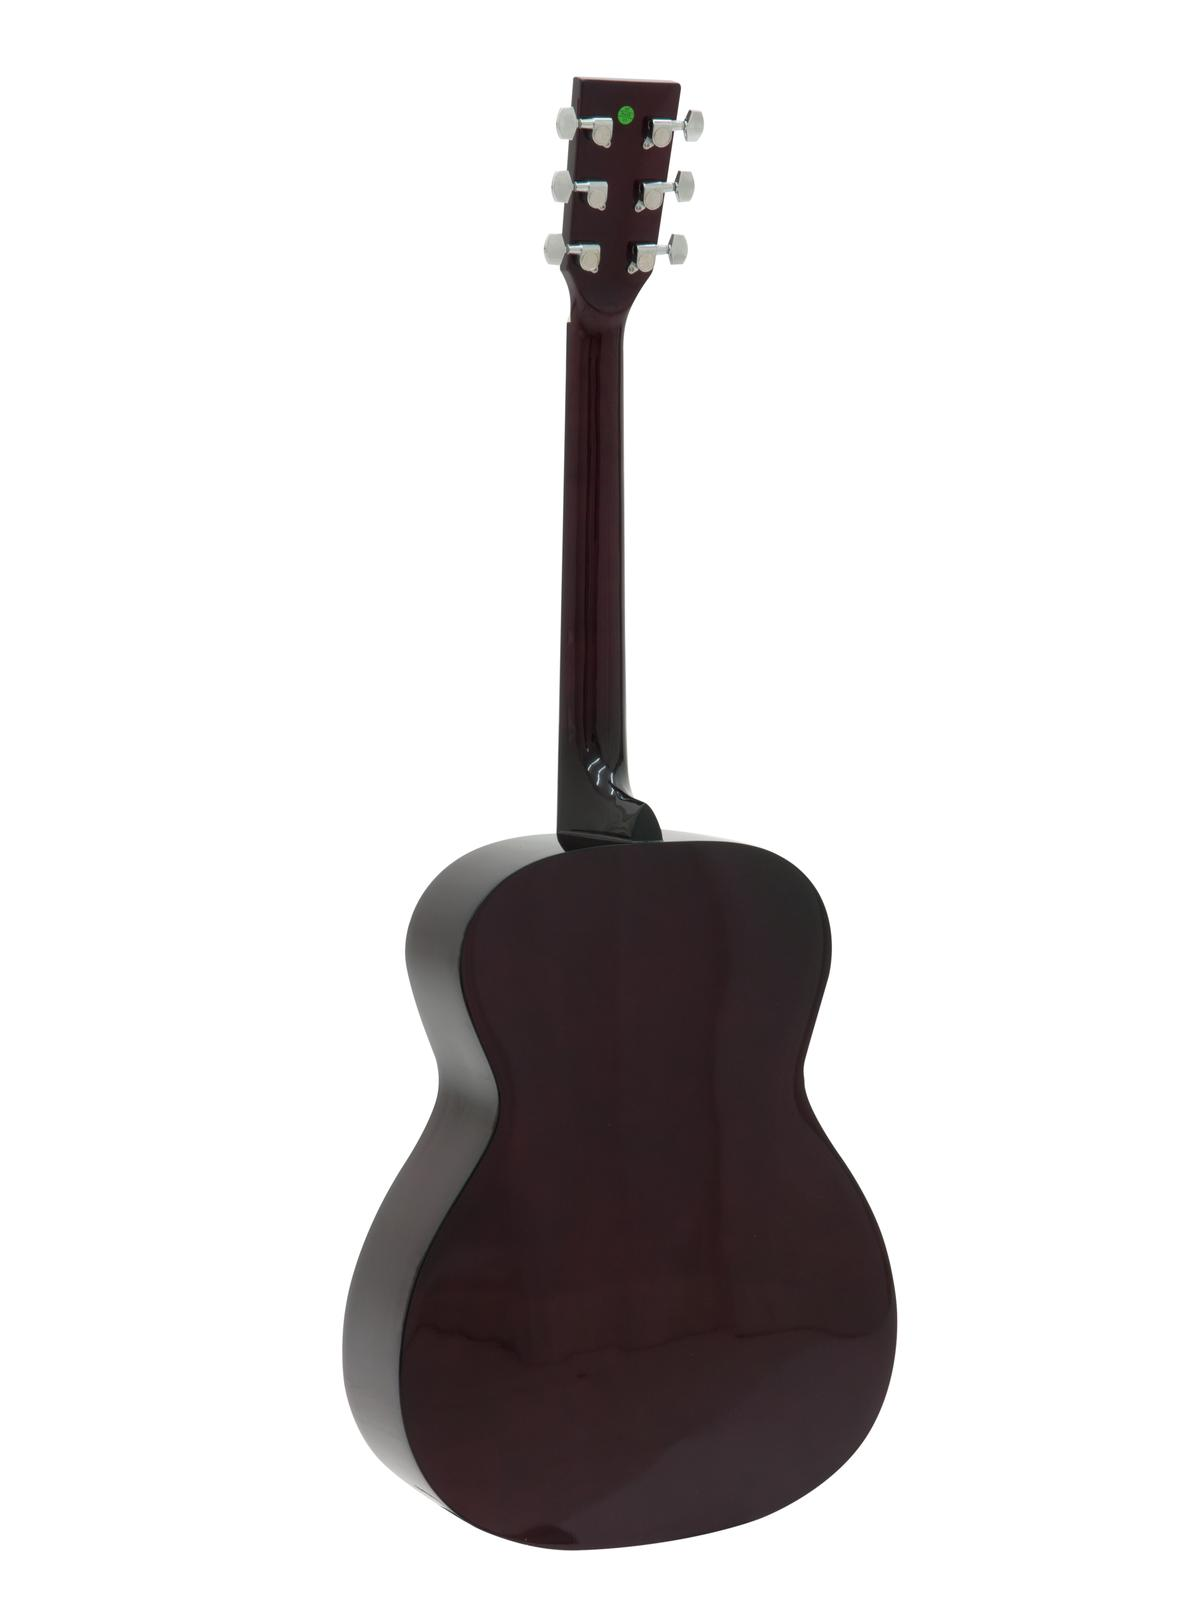 DIMAVERY AW-Occidentale 303 sunburst chitarra